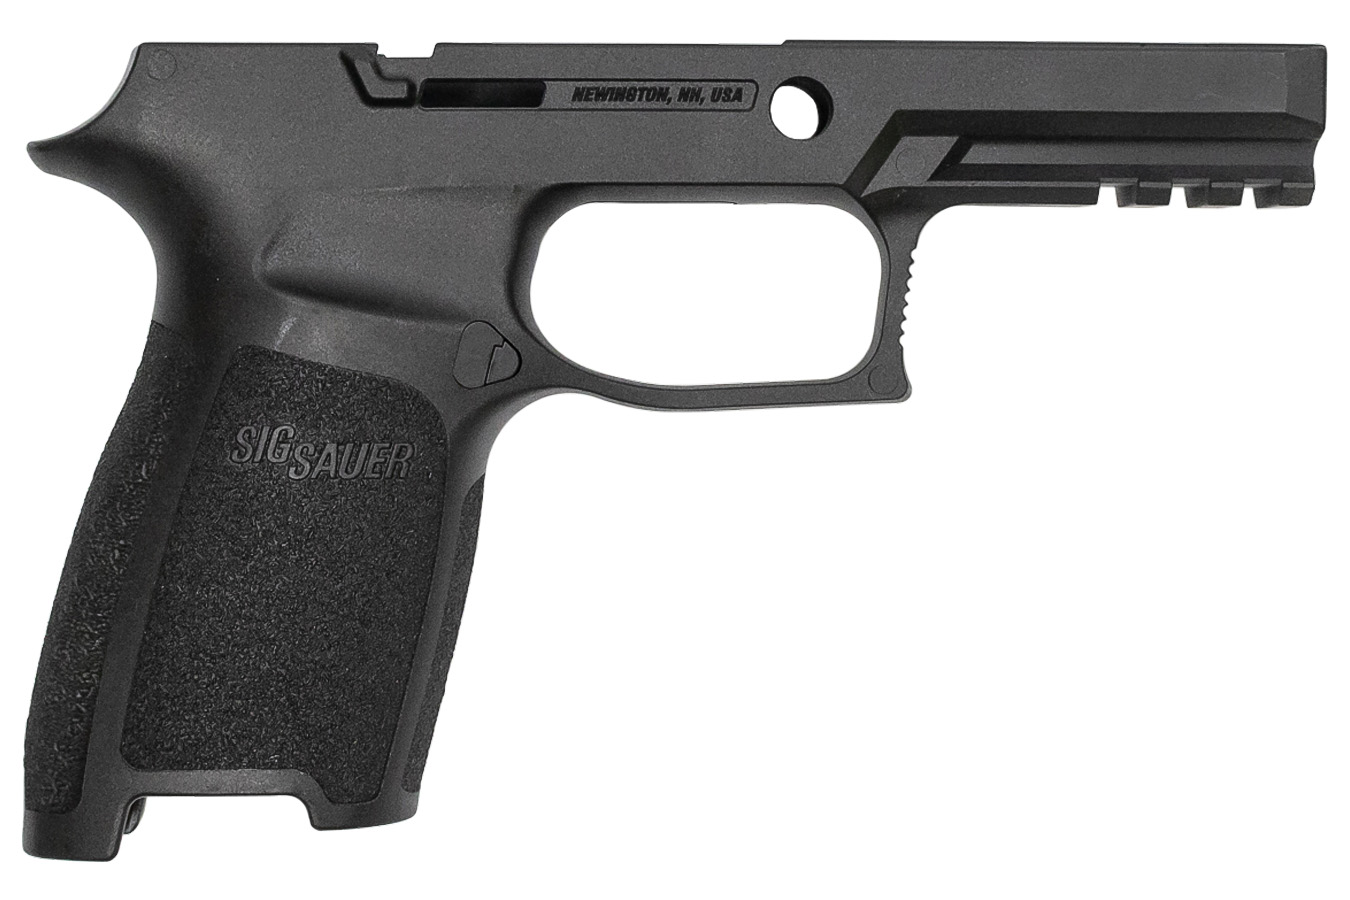 P320 GRIP MODULE FOR CARRY SZ 9/40/357